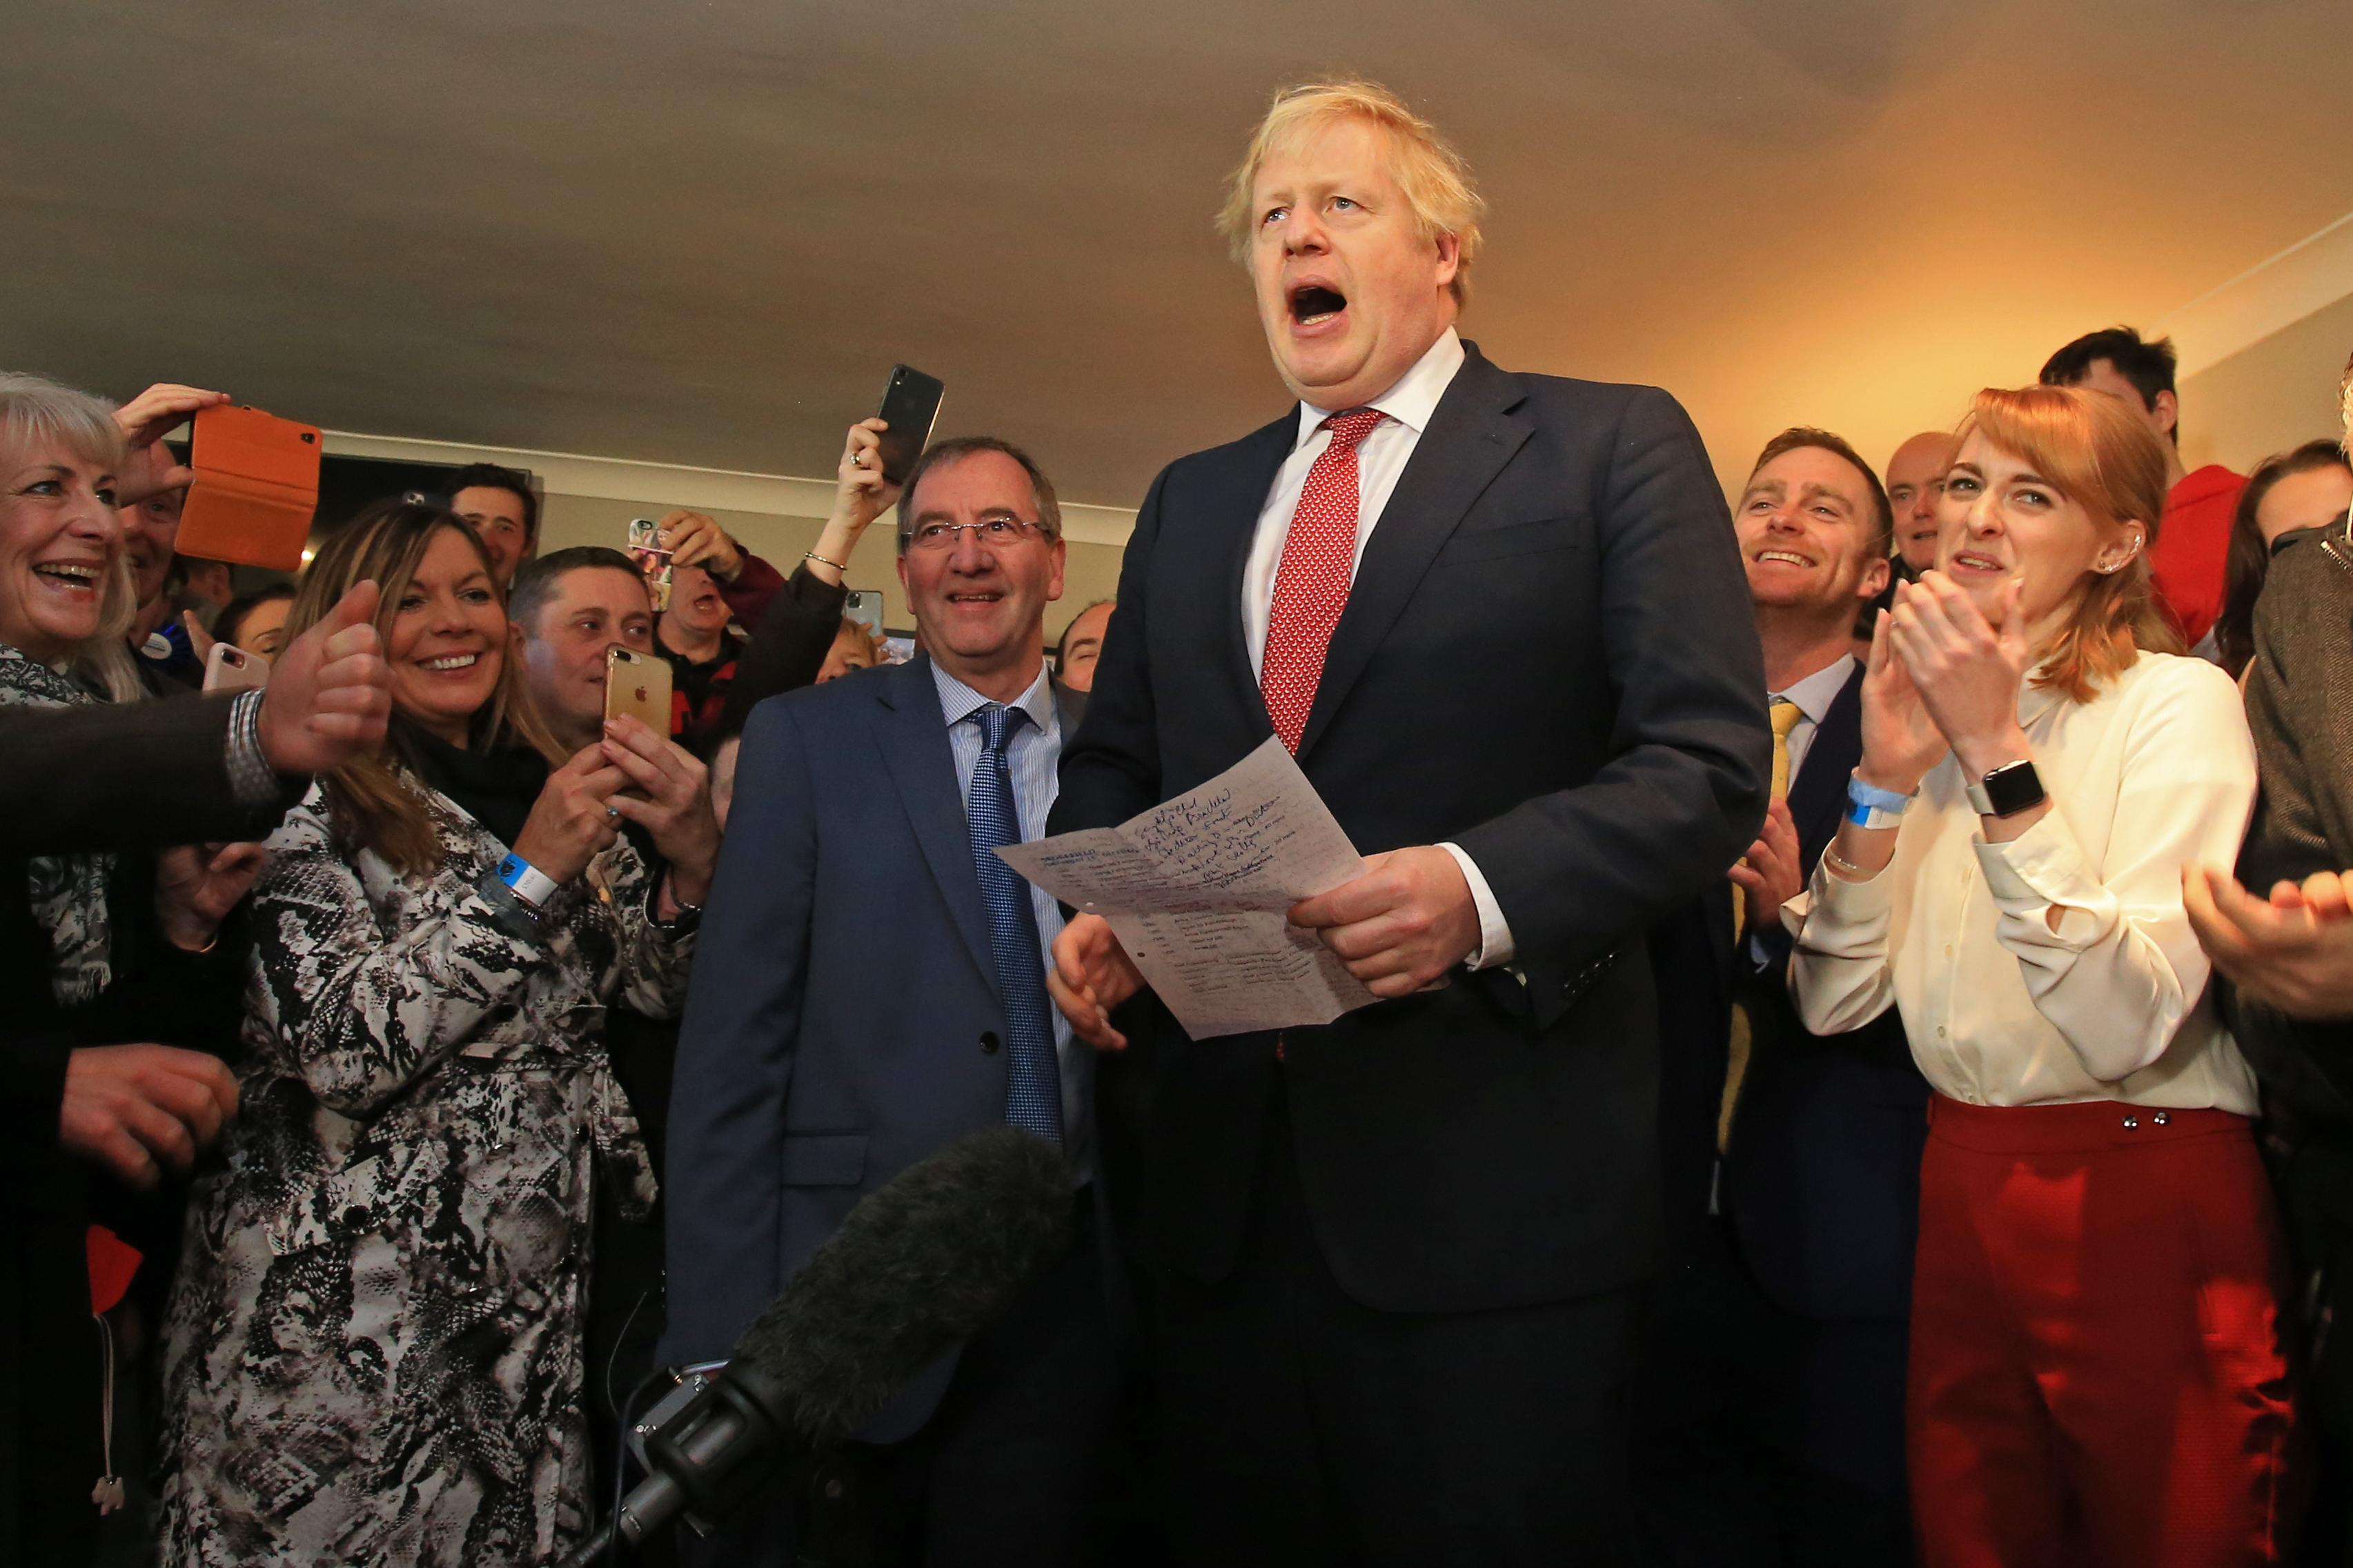 Prime Minister Boris Johnson speaks to supporters during a visit to see newly elected Conservative party MP for Sedgefield, Paul Howell during a visit to Sedgefield Cricket Club in County Durham.